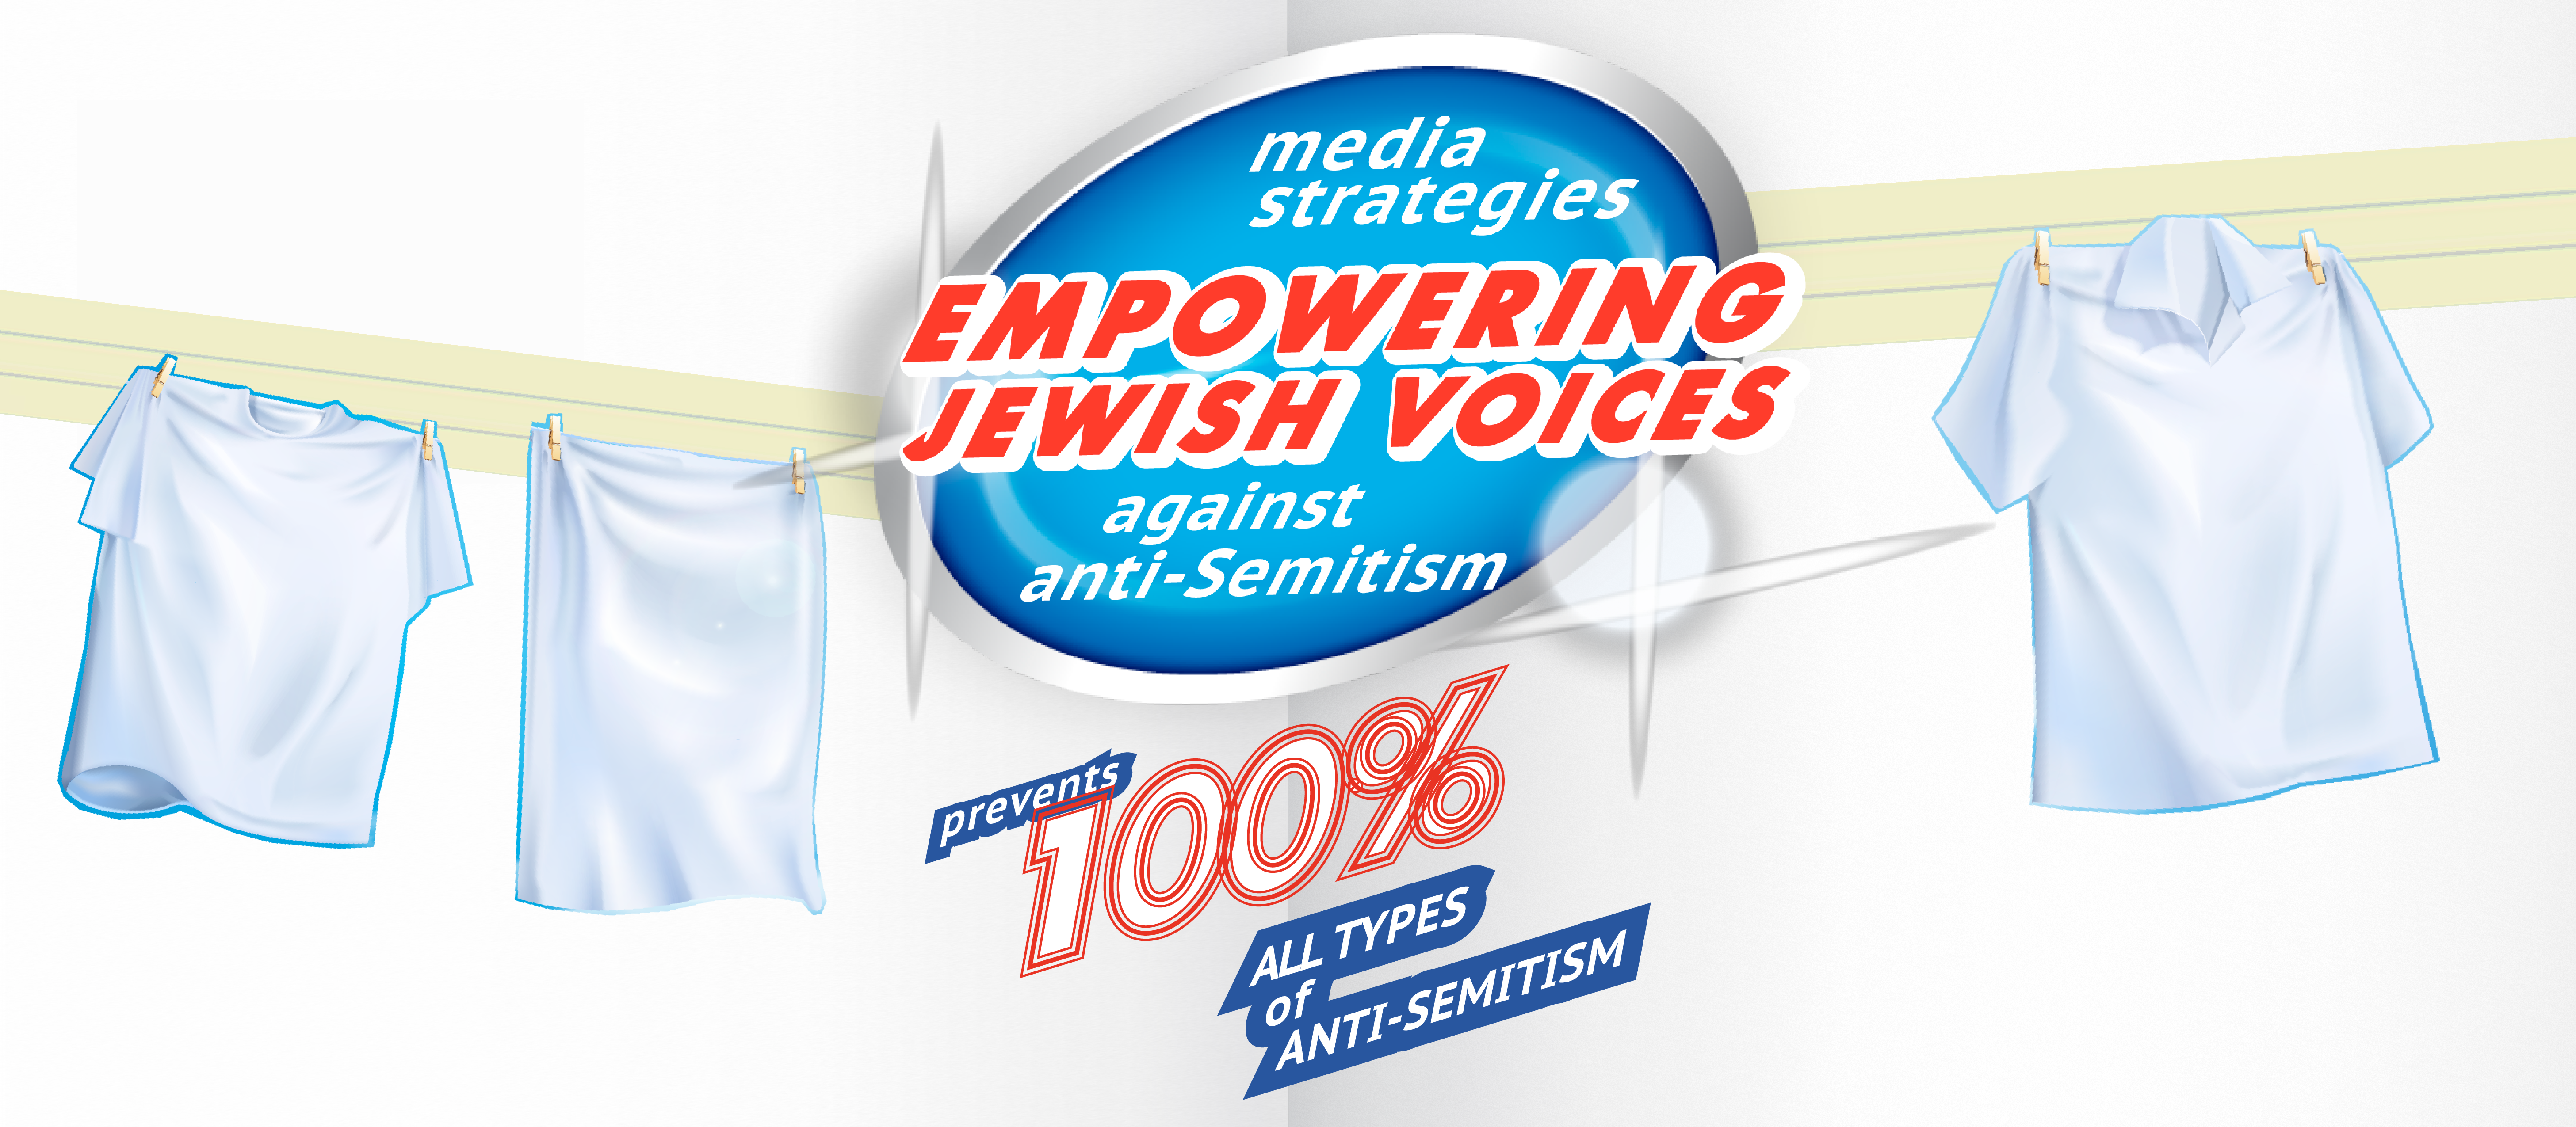 Plakat_Empowering Jewish Voices.png